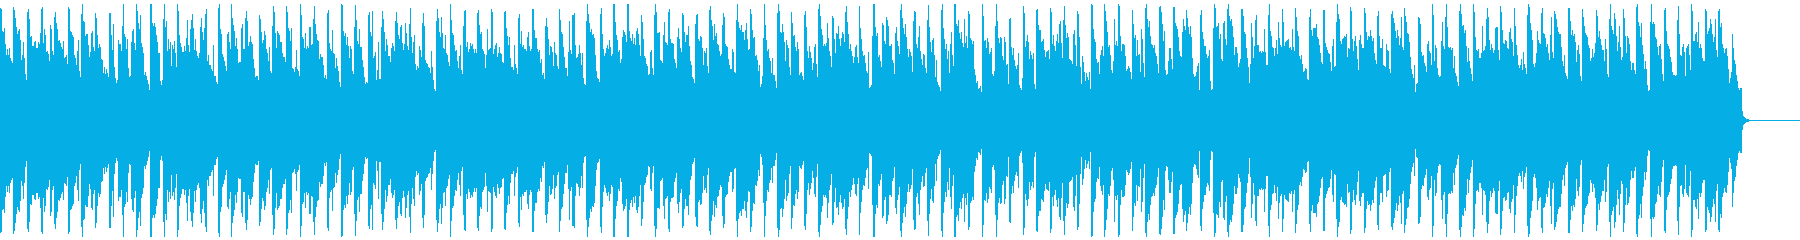 Handel's arrangement for the award ceremony Vertical and snare's reproduced waveform